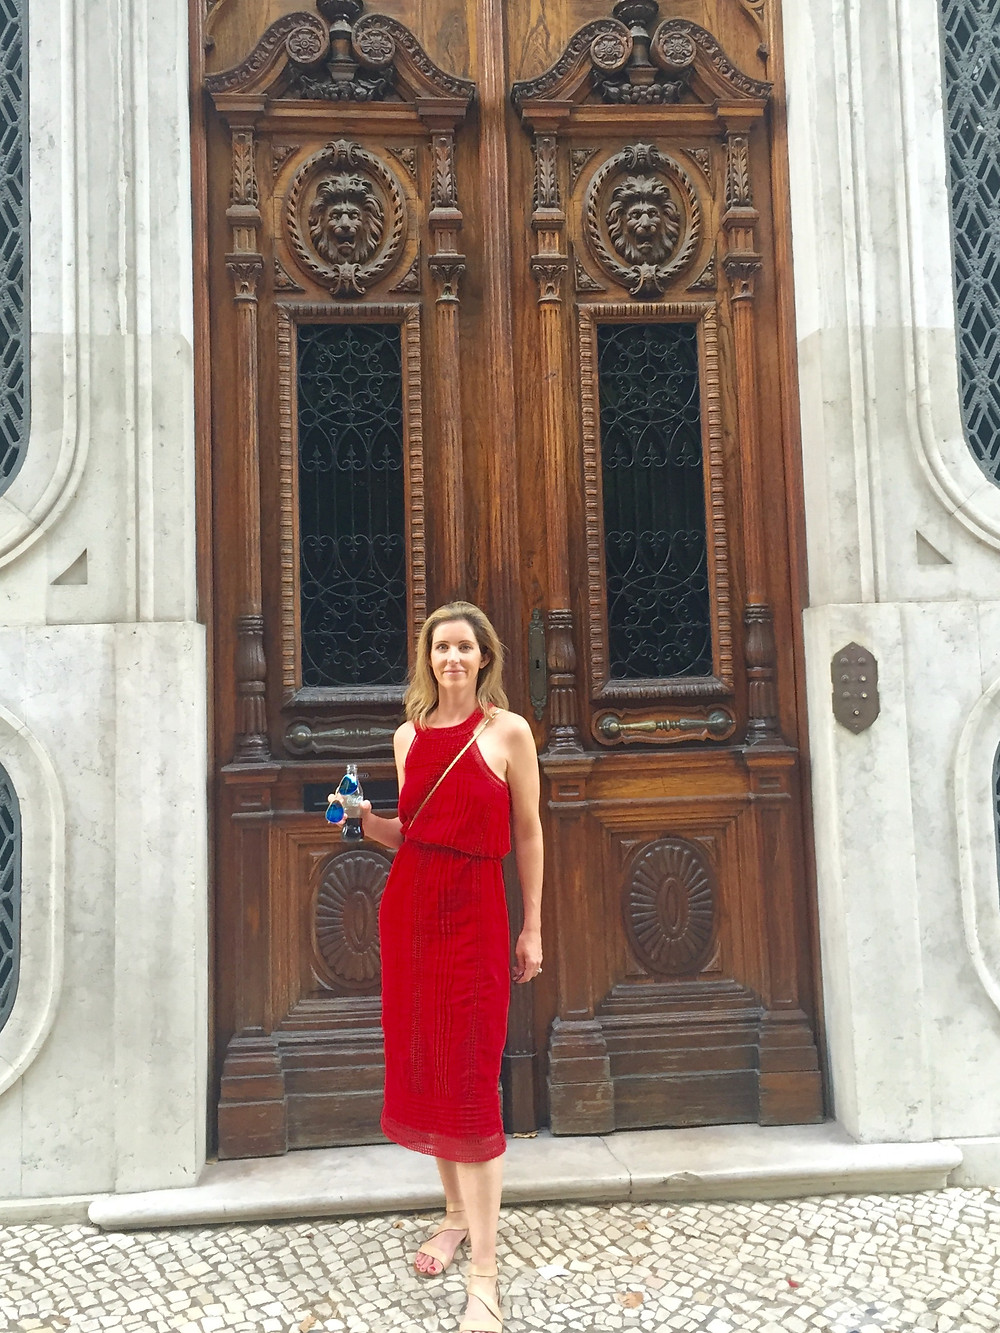 This is me posing in front of one of the fabulous doors.I love a nice tall European door. It was so hot while we were there which is why I'm holding a diet coke.